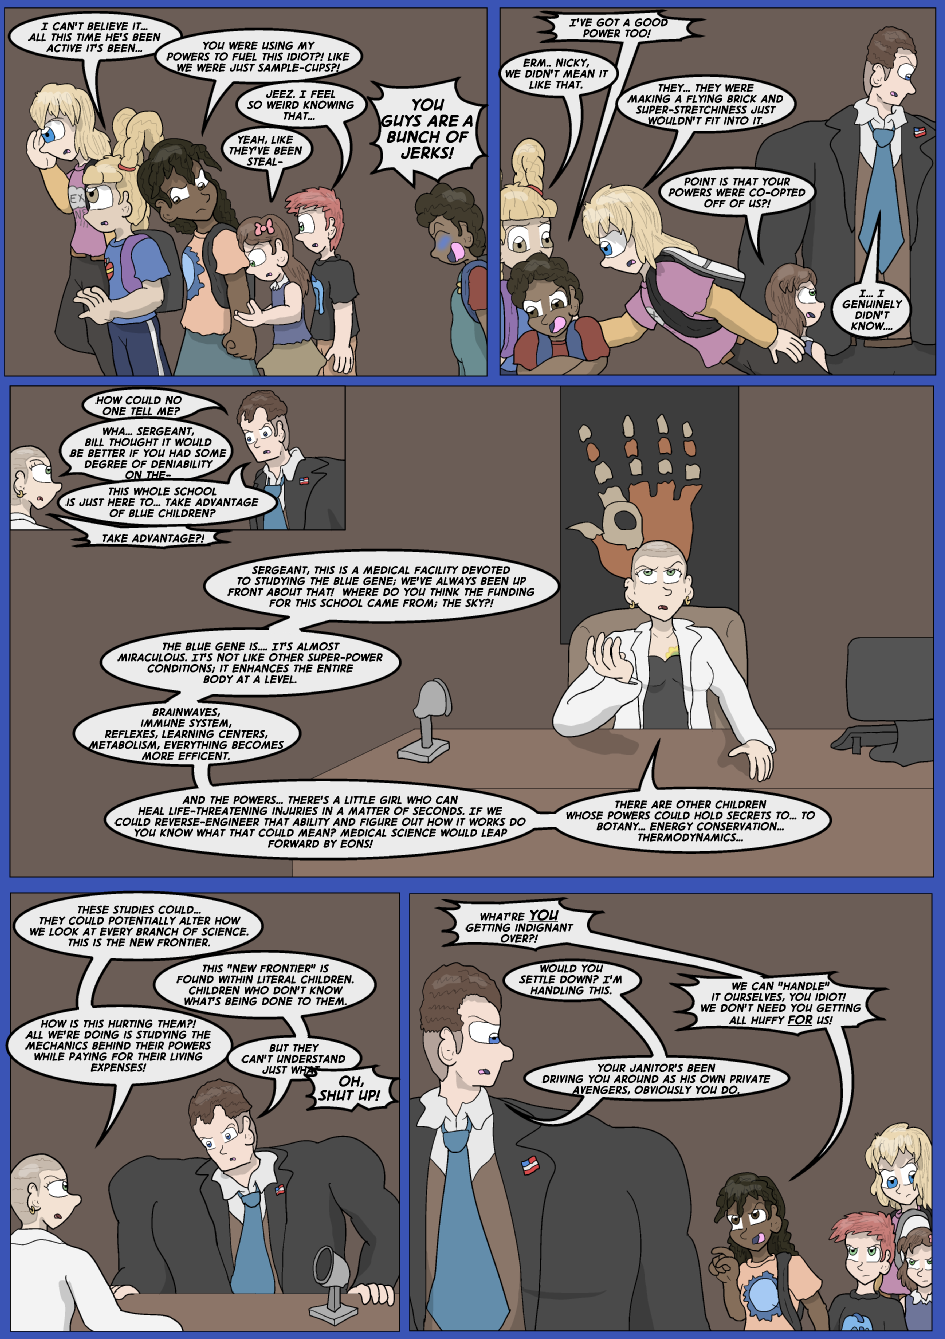 Showing Your Blue Colors- Page 8